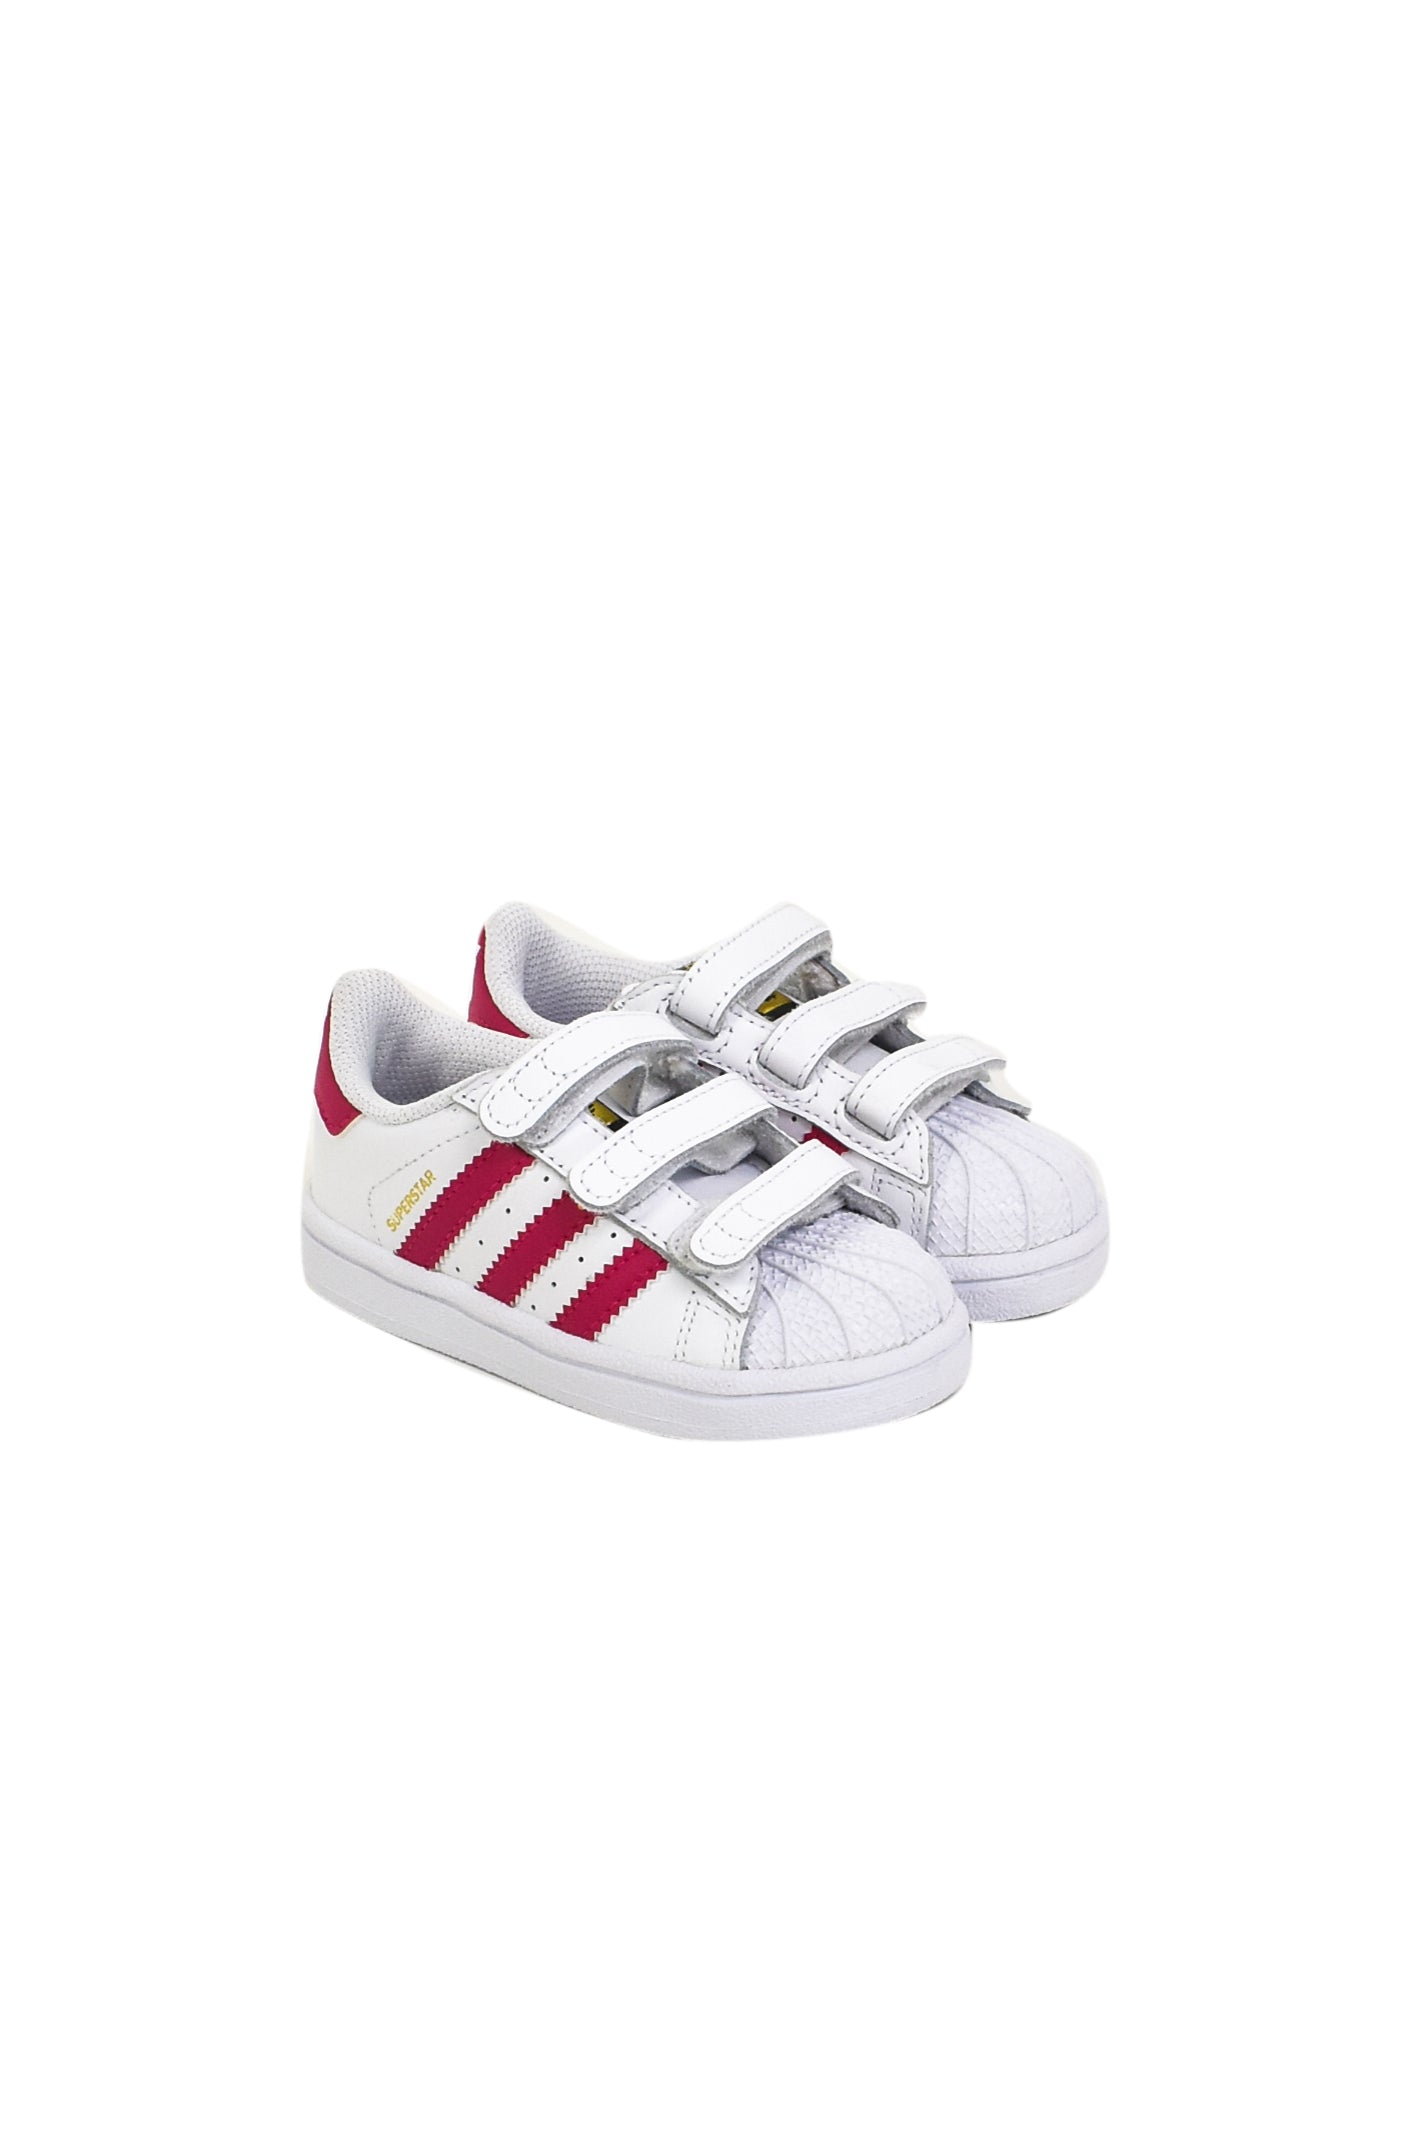 10014033 Adidas Baby ~ Shoes 18M (US 5.5) at Retykle